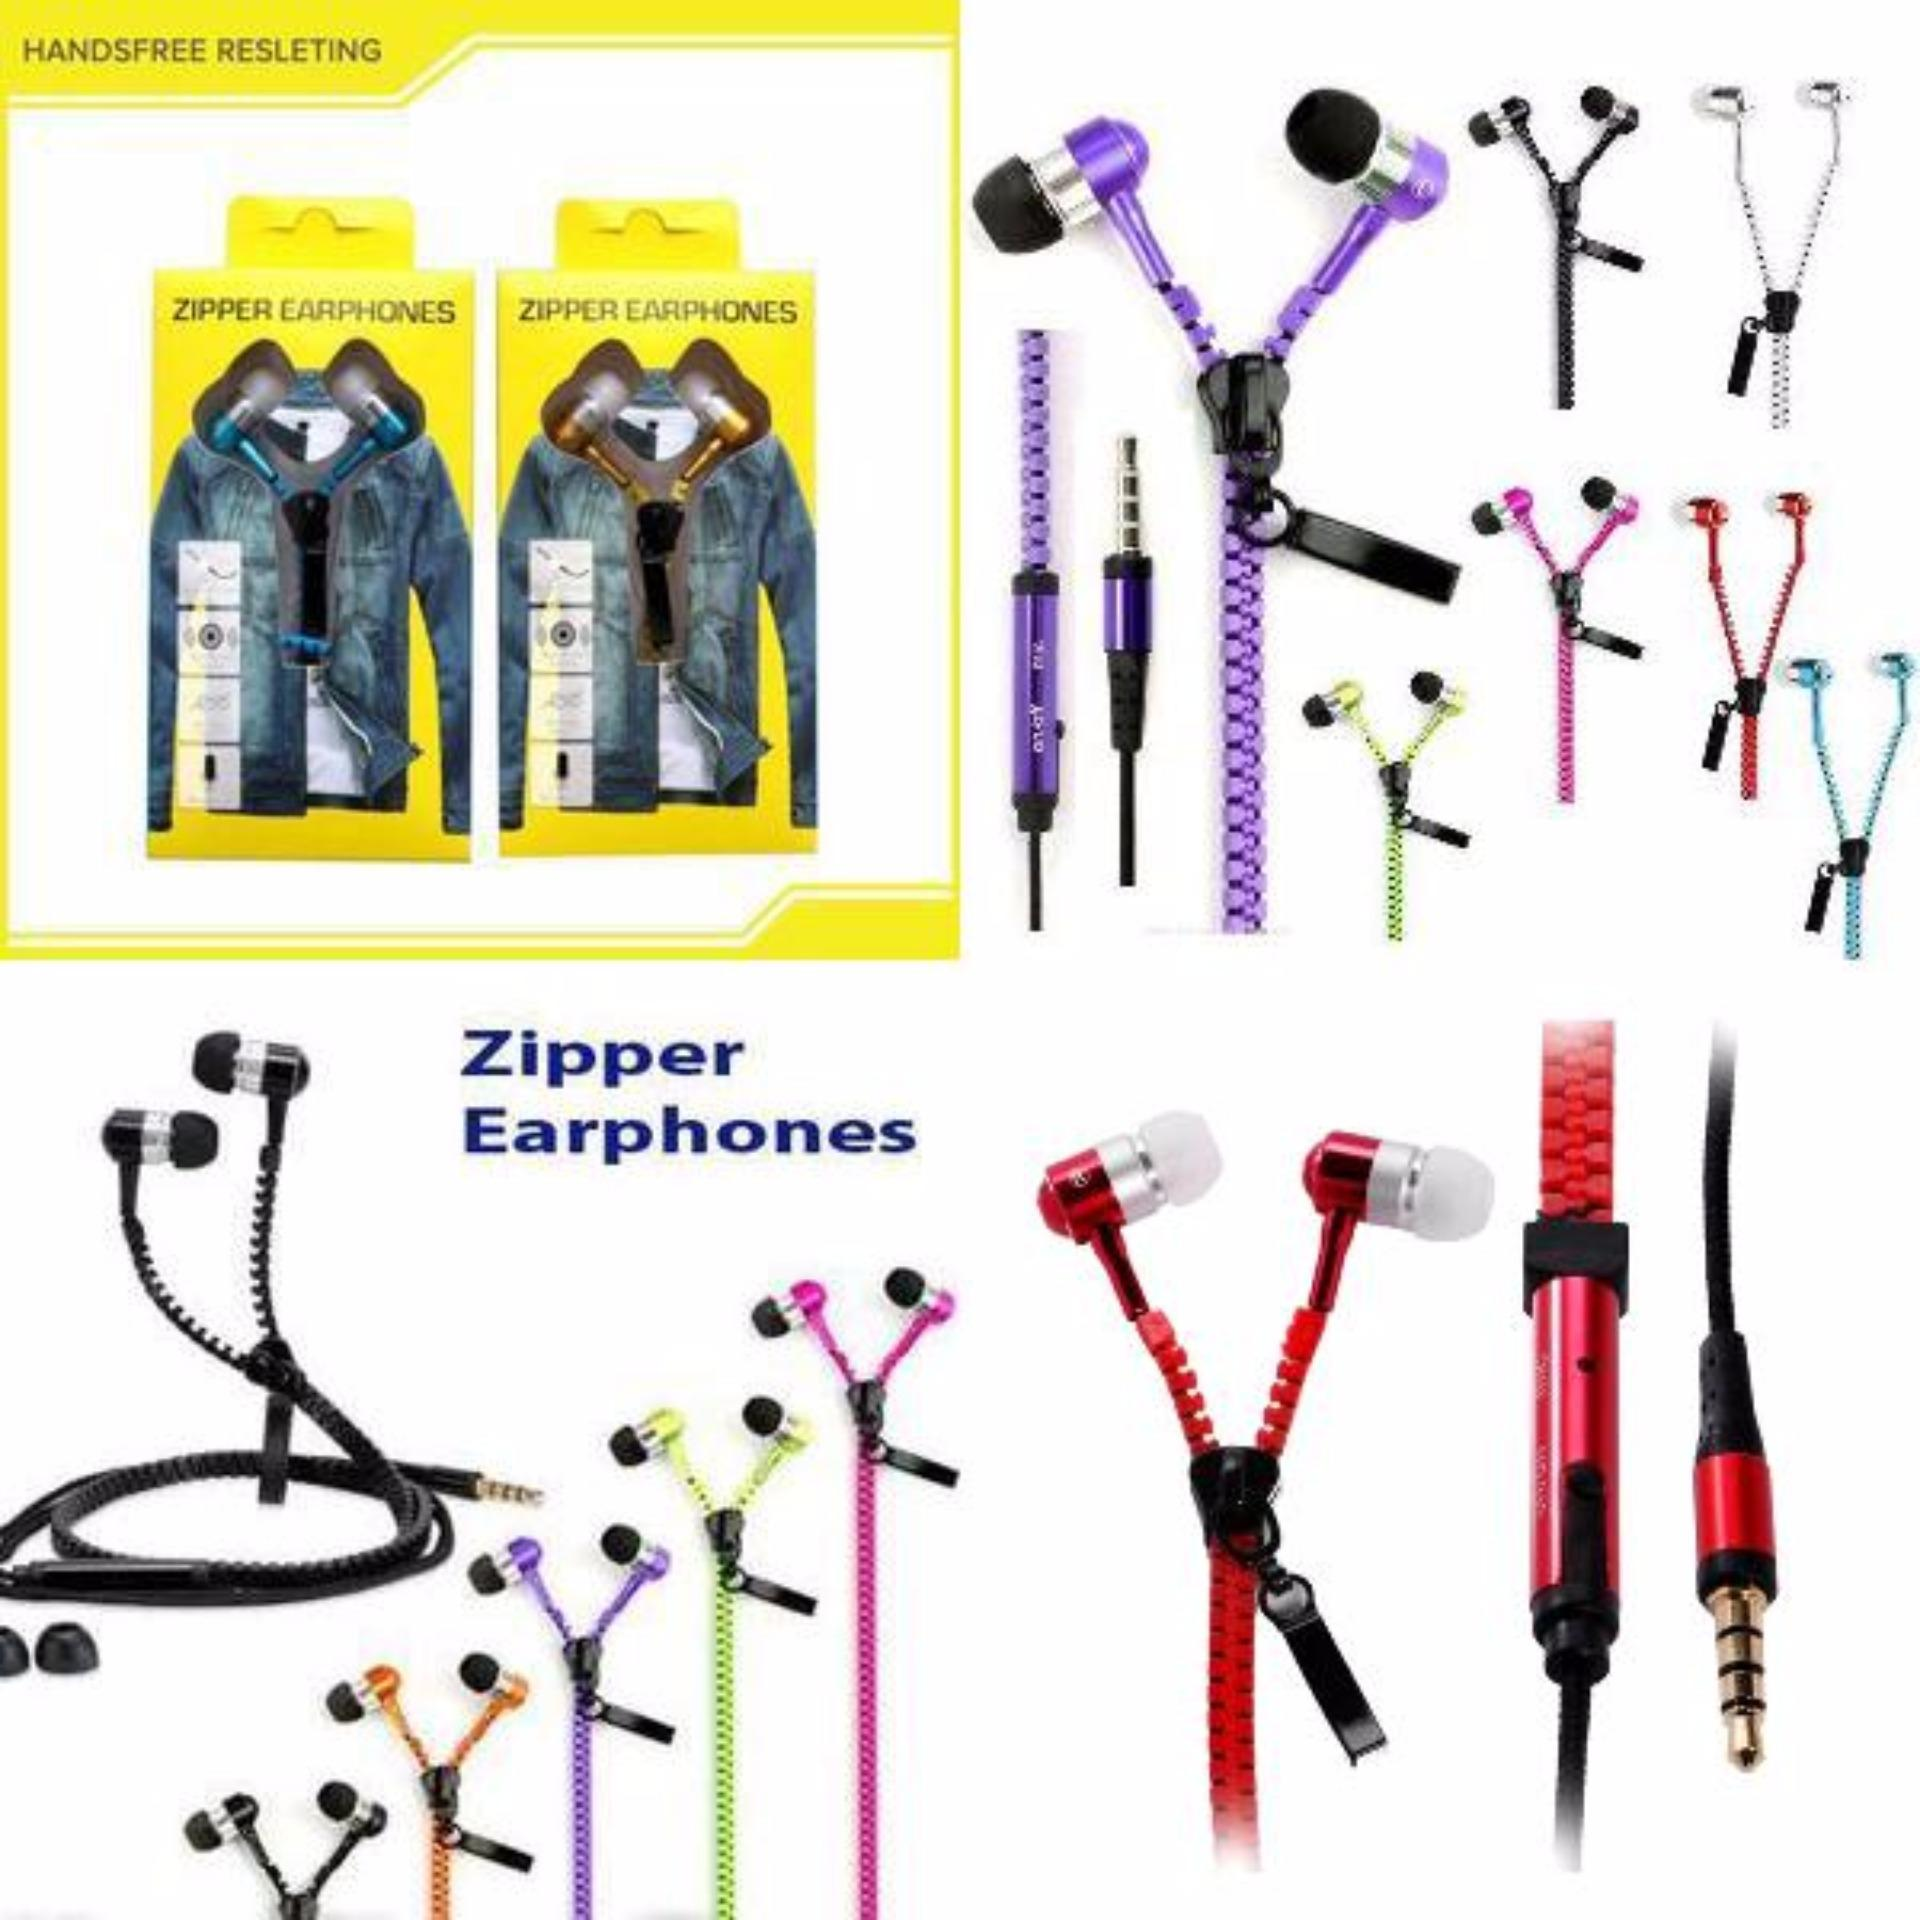 Harga Zipper Earphones Handsfree Headset Stereo Bass In Ear Wired Headset 3 5Mm Satu Set